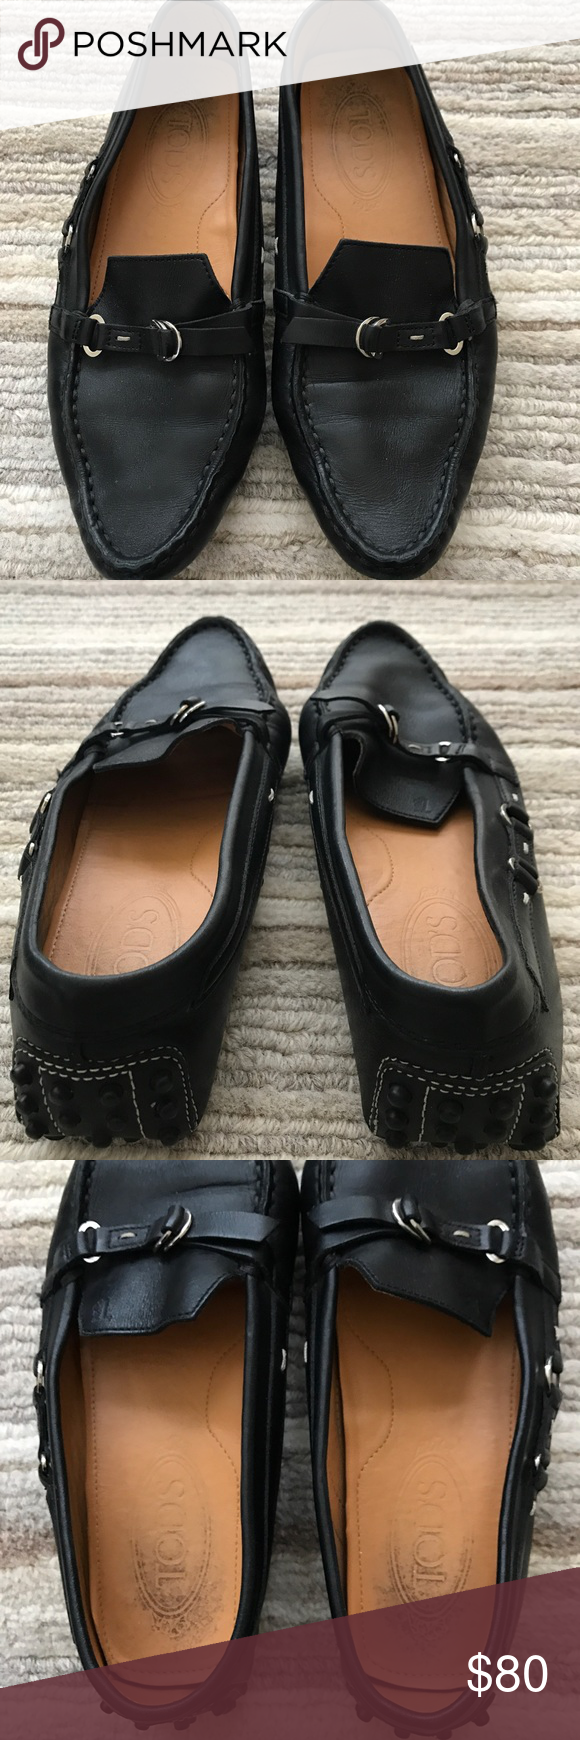 Tod's Loafer Used condition - lots of life left! Pictures show wear on insole and on bottom soles, otherwise in great condition.  100% authentic - no box, but Tod's duster bag included with purchase. From a pet & smoke free home. Tod's Shoes Flats & Loafers